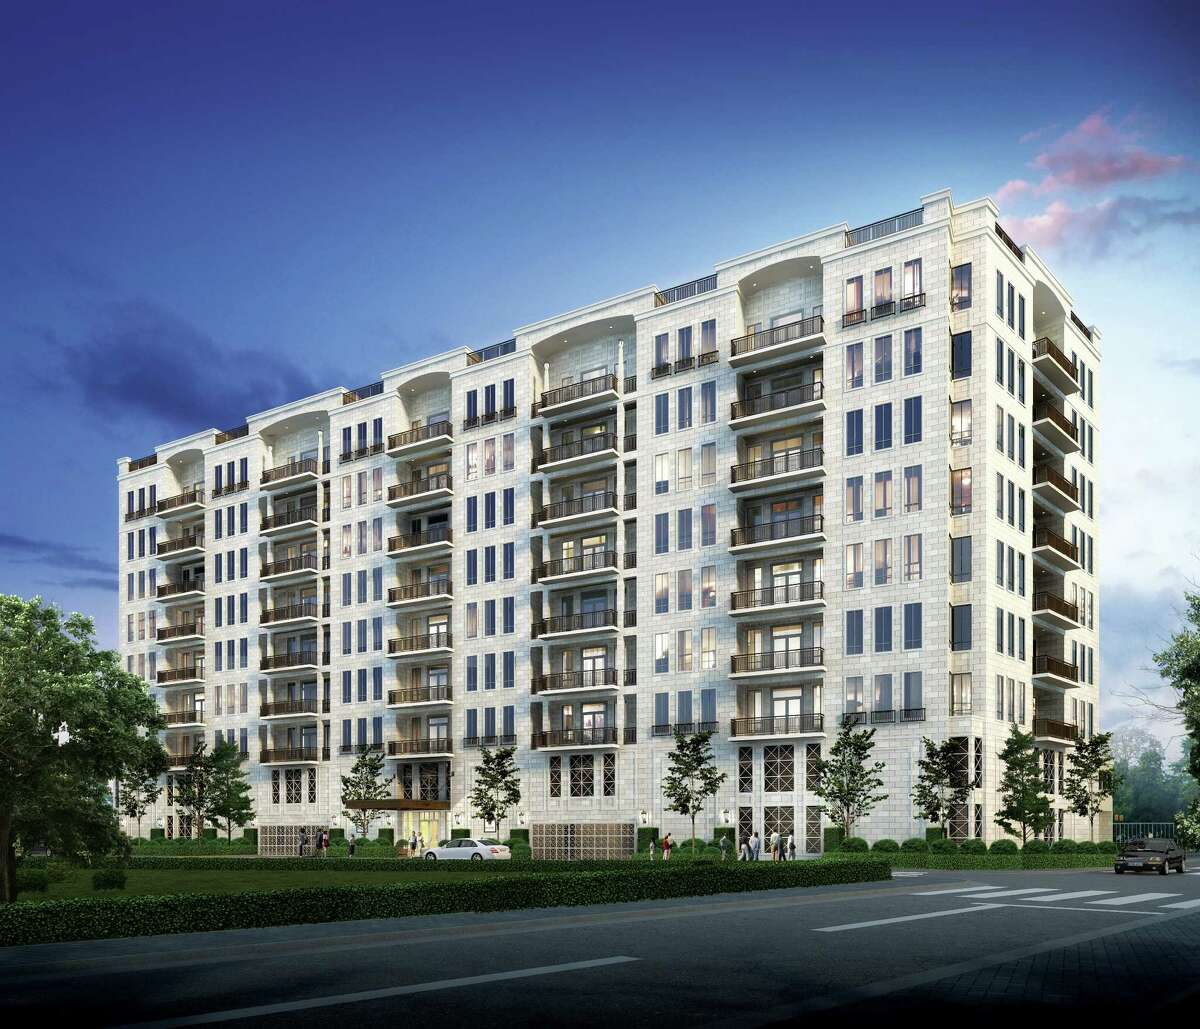 The nine-story Revere, near River Oaks, is planned to have 33 condominiums going for $1.6 million to $2.9 million.